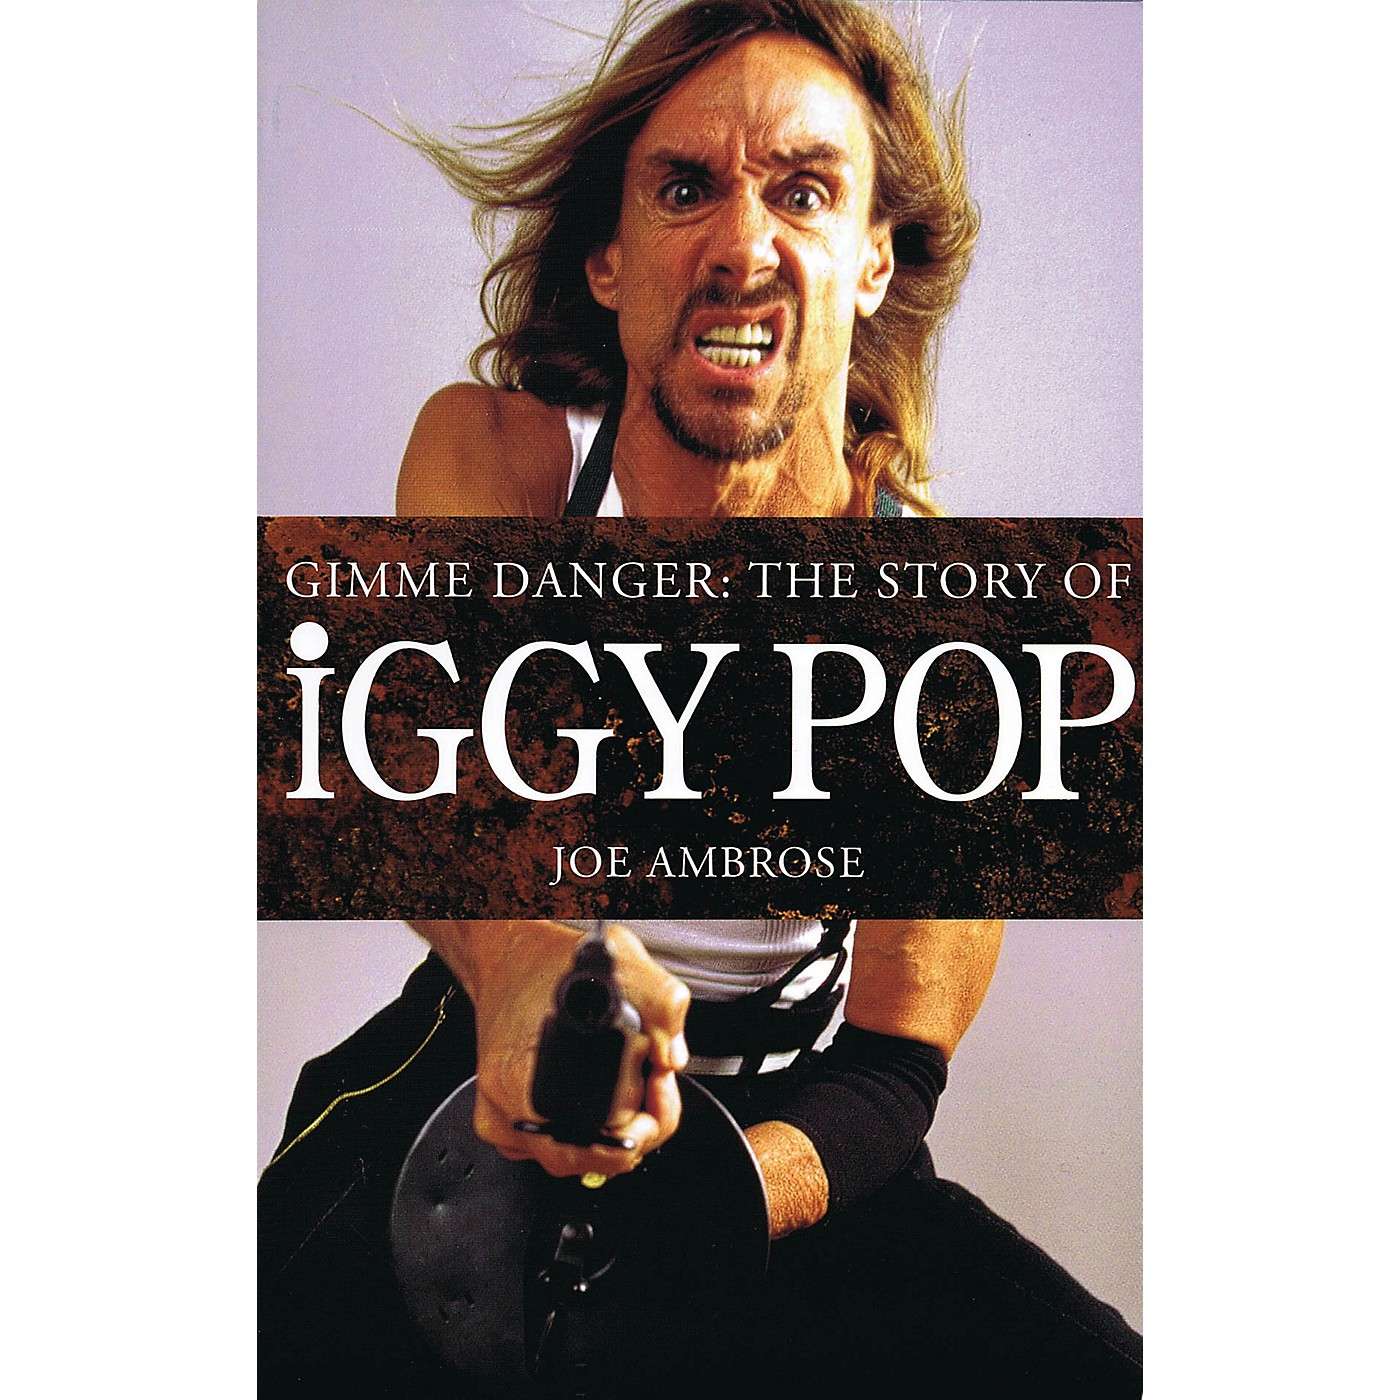 Omnibus Gimme Danger: The Story of Iggy Pop Omnibus Press Series Softcover thumbnail